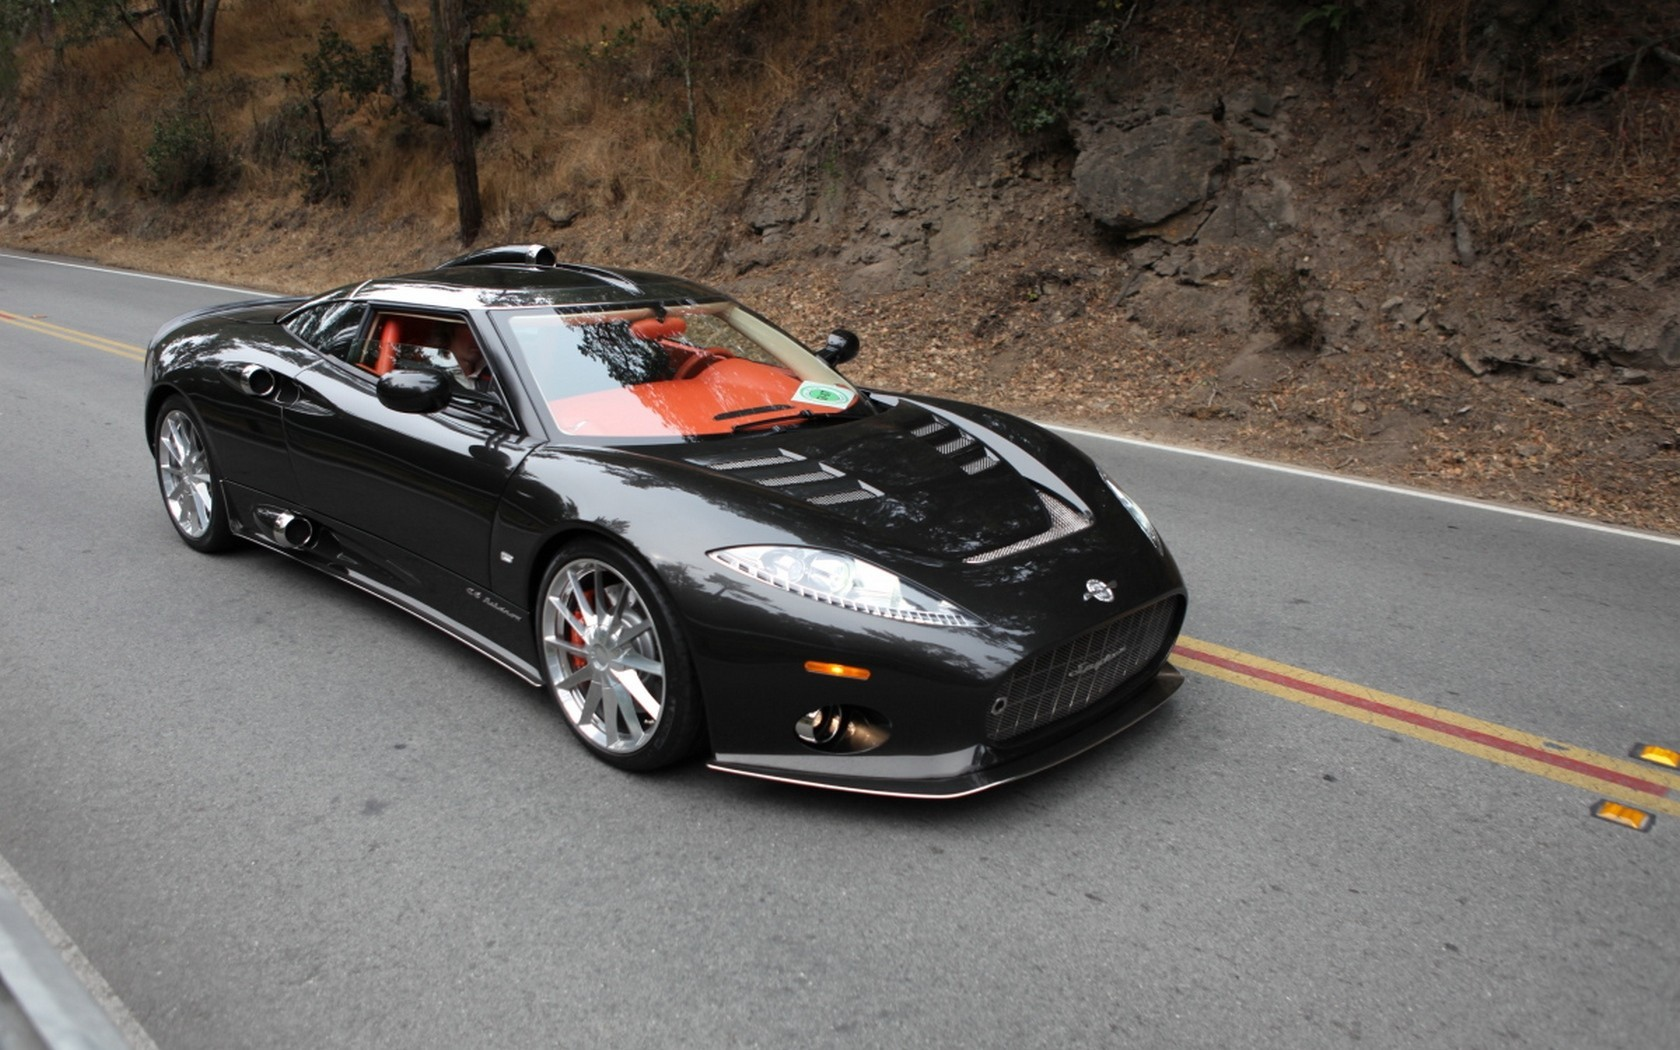 Wallpaper Black Spyker Ferrari on the road